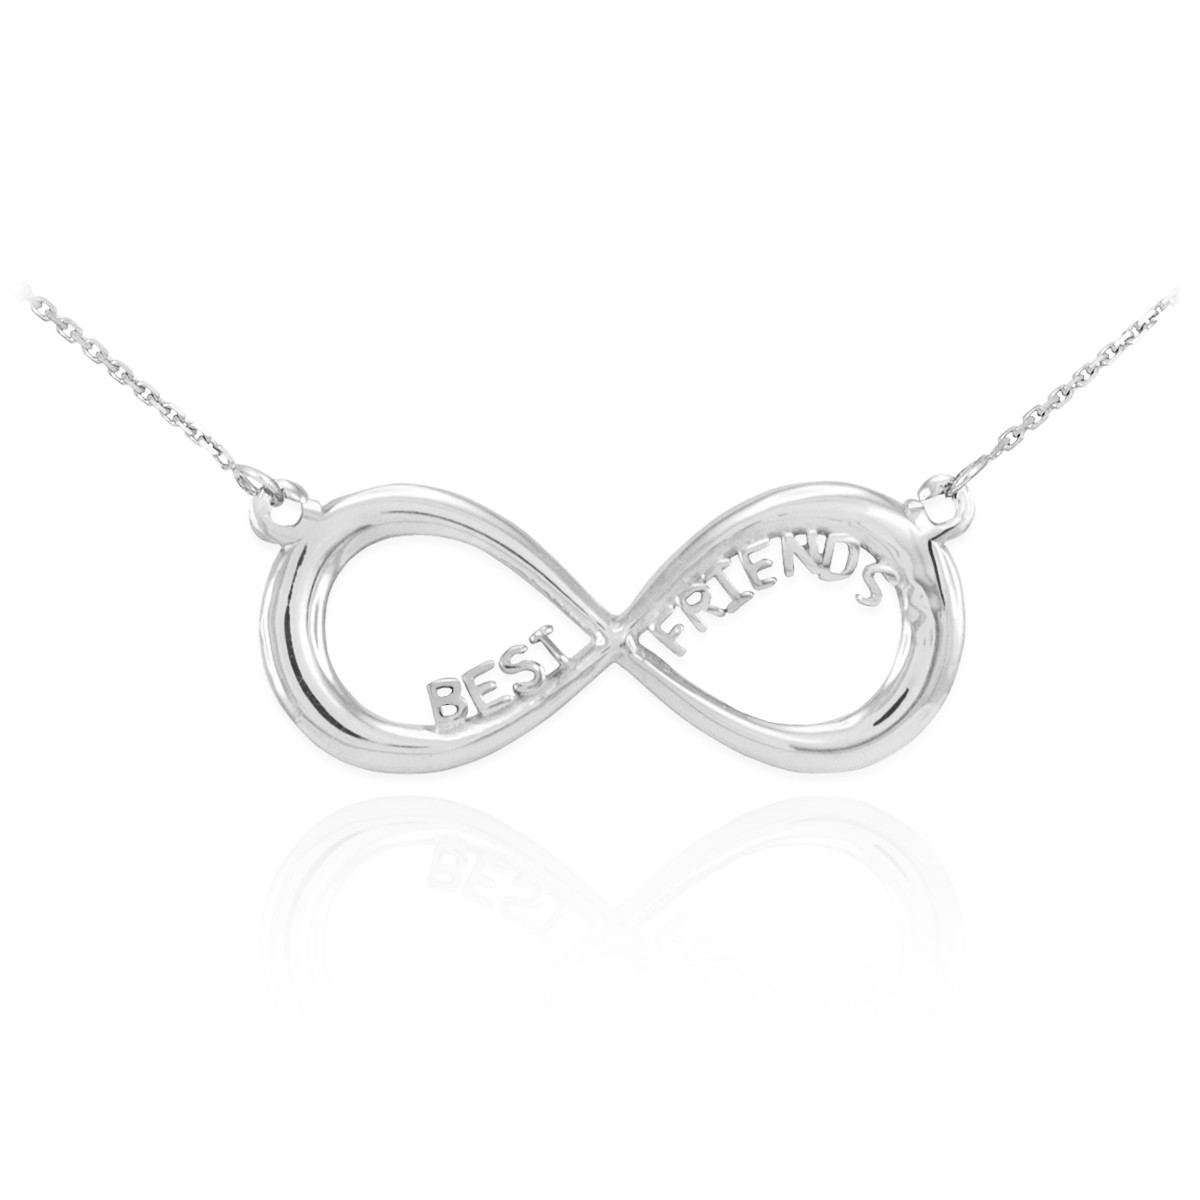 Gift for Friends 14K White Gold Infinity Necklace with BEST FRIENDS Message